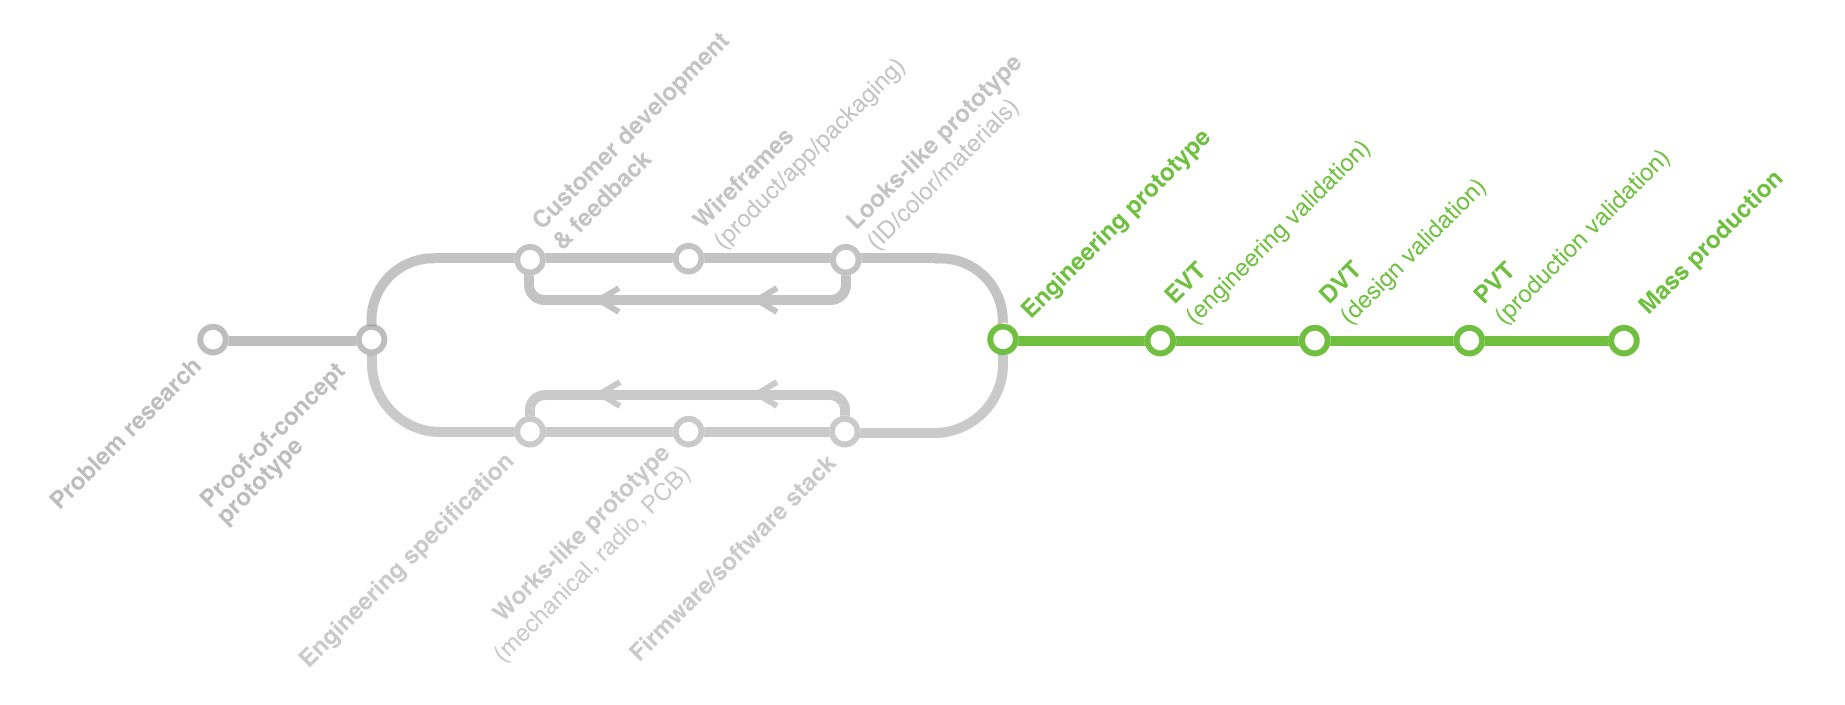 The Illustrated Guide to Product Development (Part 4